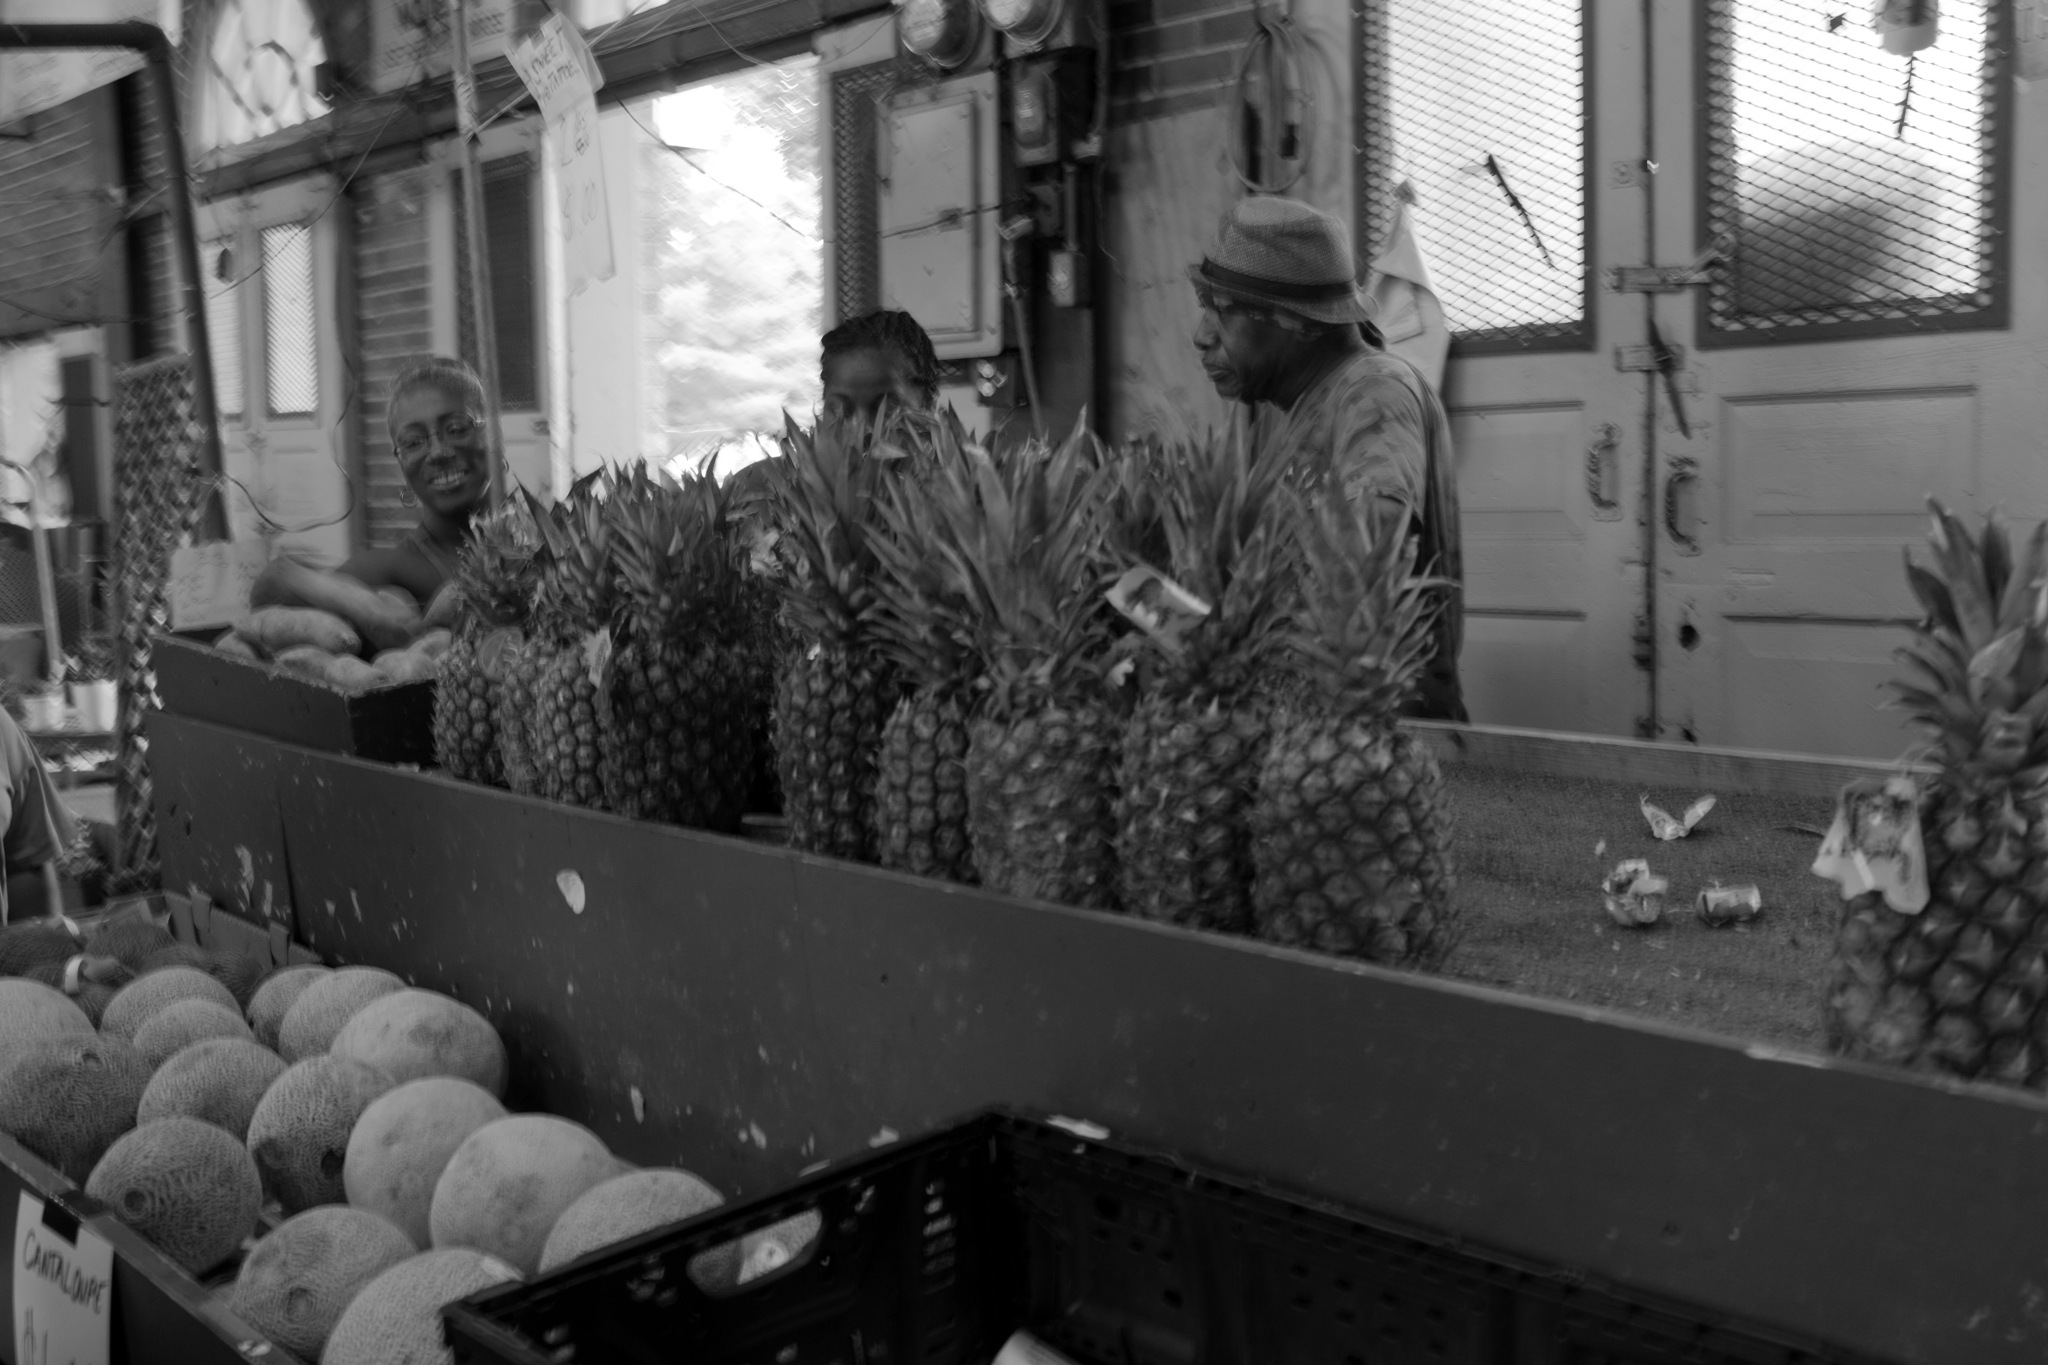 fruit stand & vendors by lucky